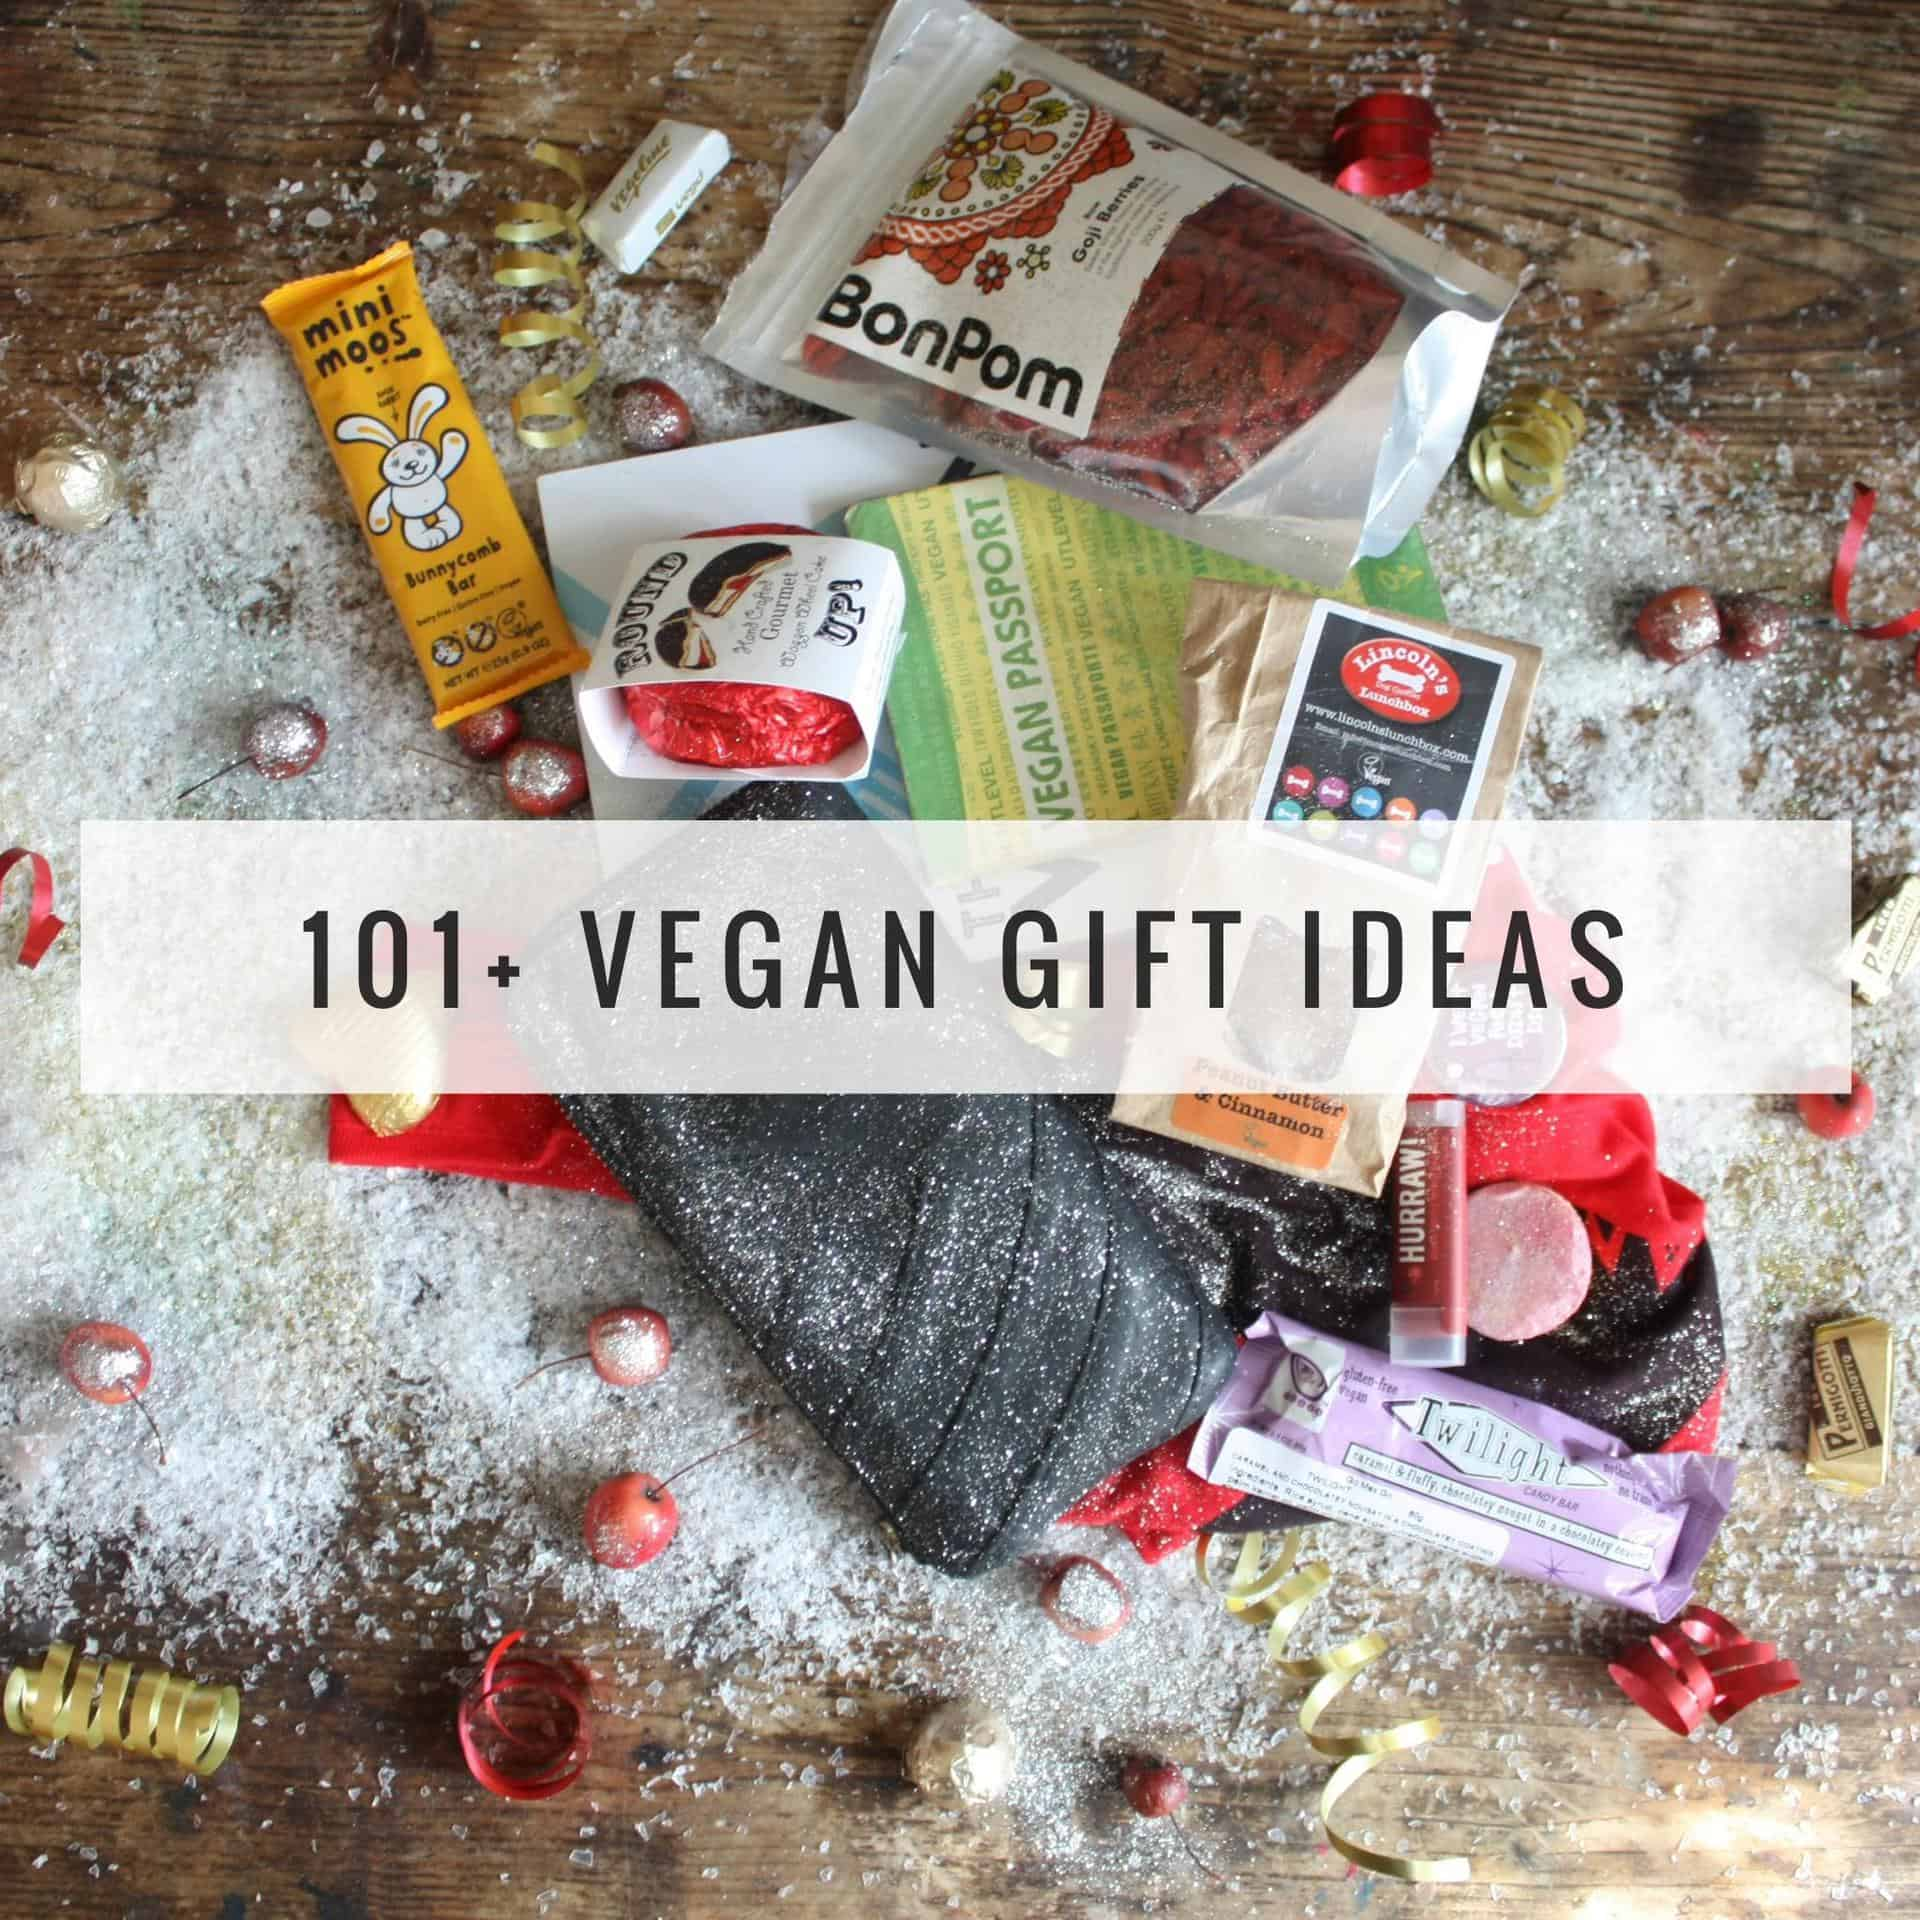 Vegan Baby Gift Ideas : Gift ideas for vegans ftempo